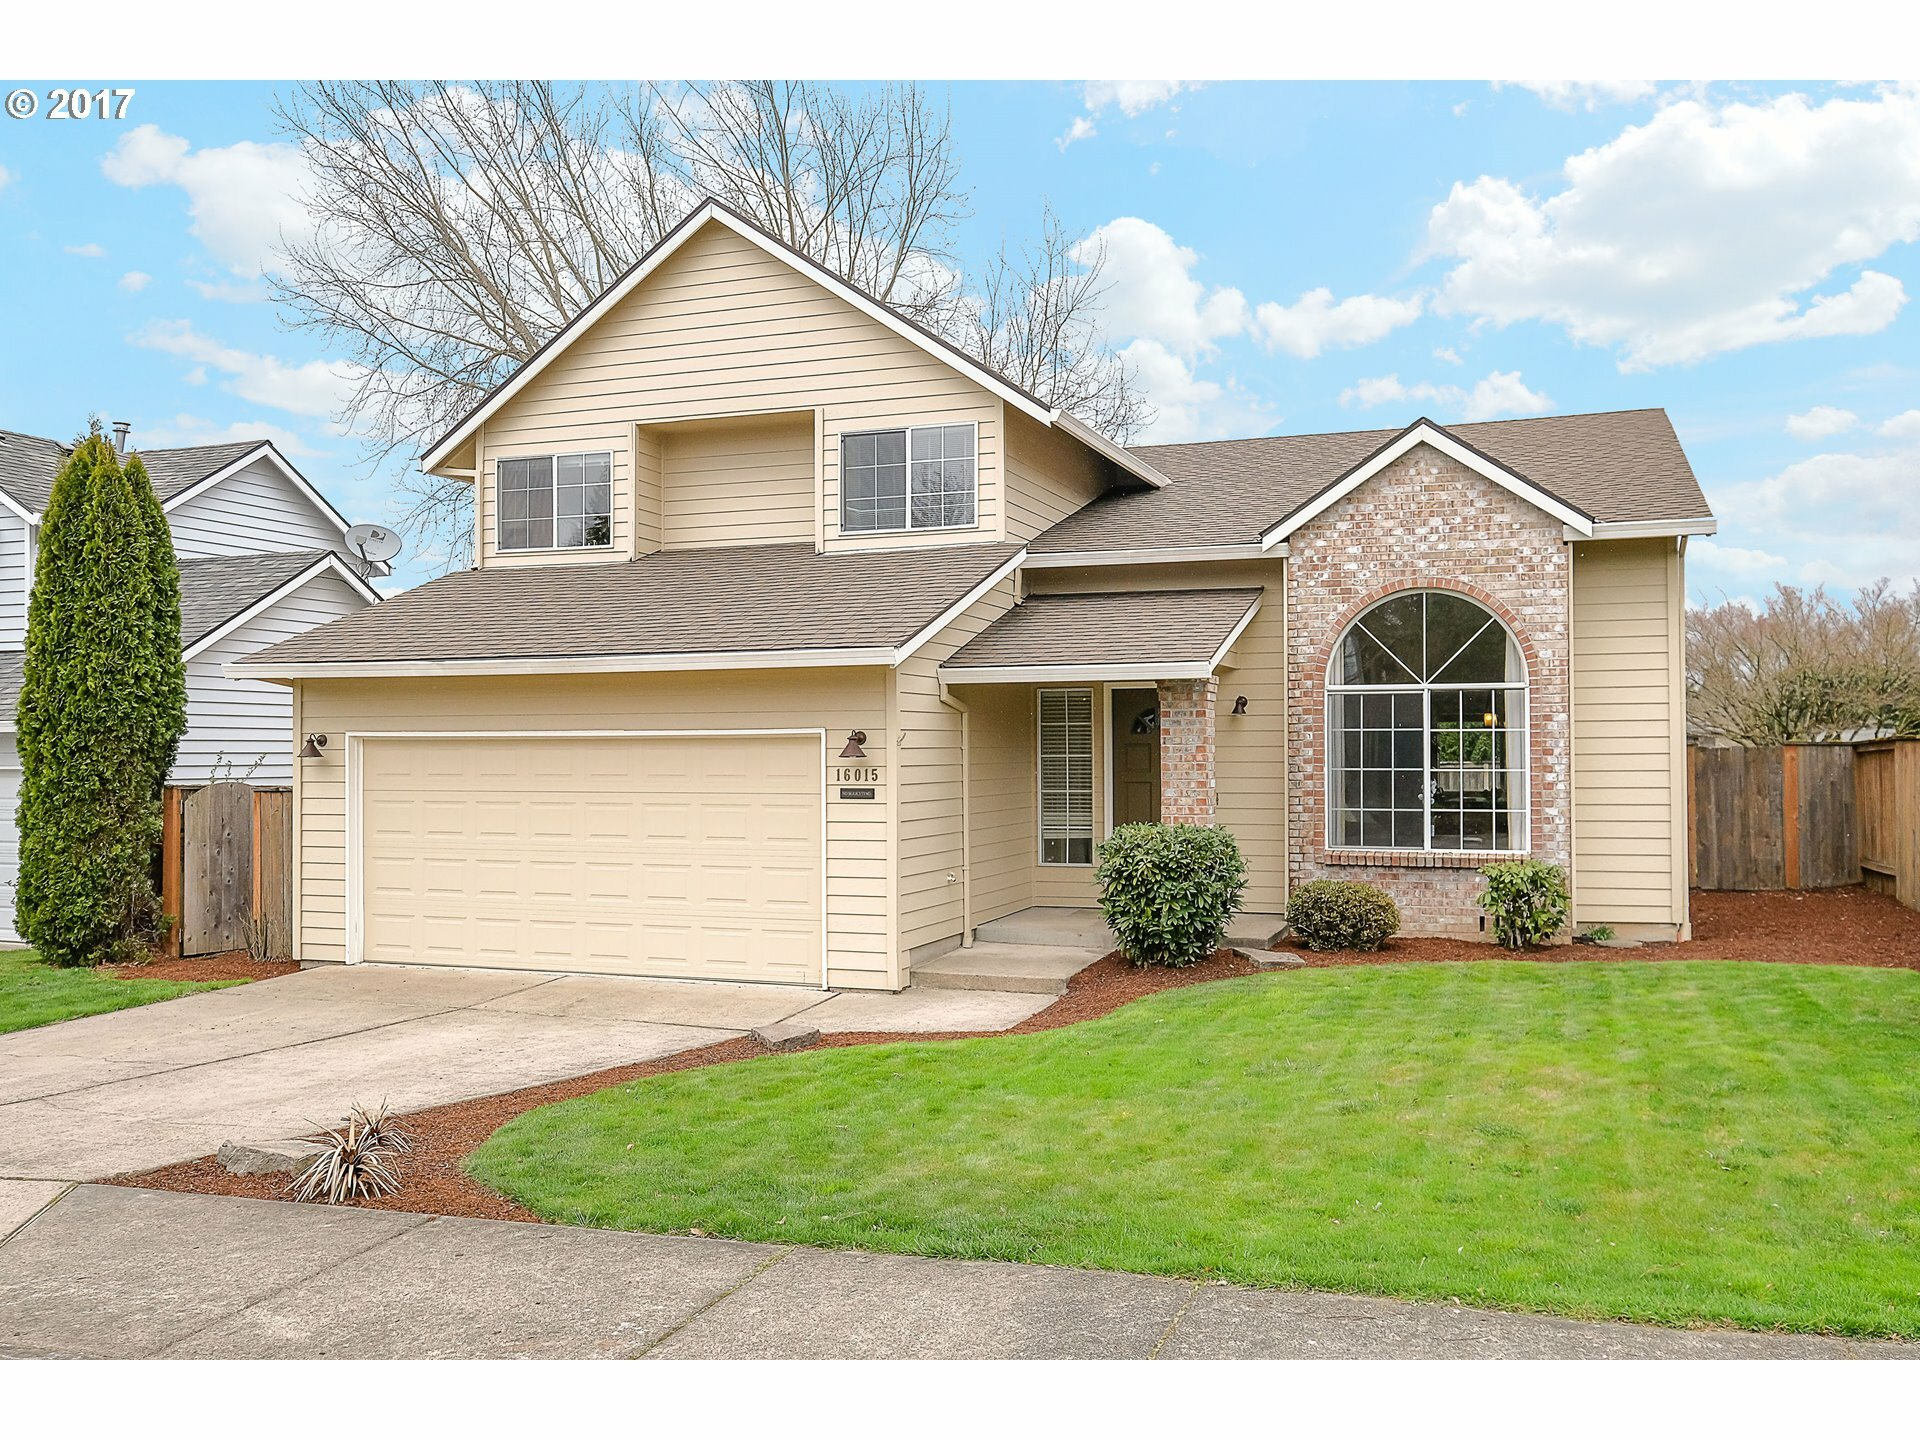 16015 Nw Telshire Dr, Beaverton, OR - USA (photo 1)